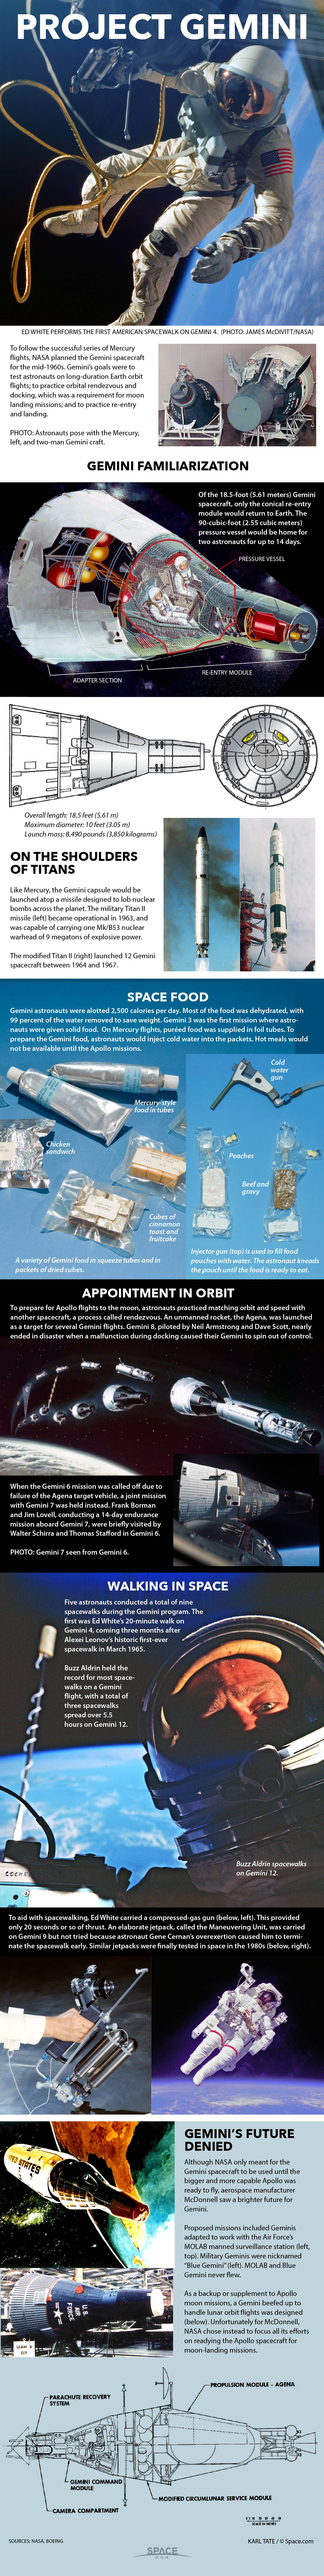 Facts about the two-man Gemini spacecraft.